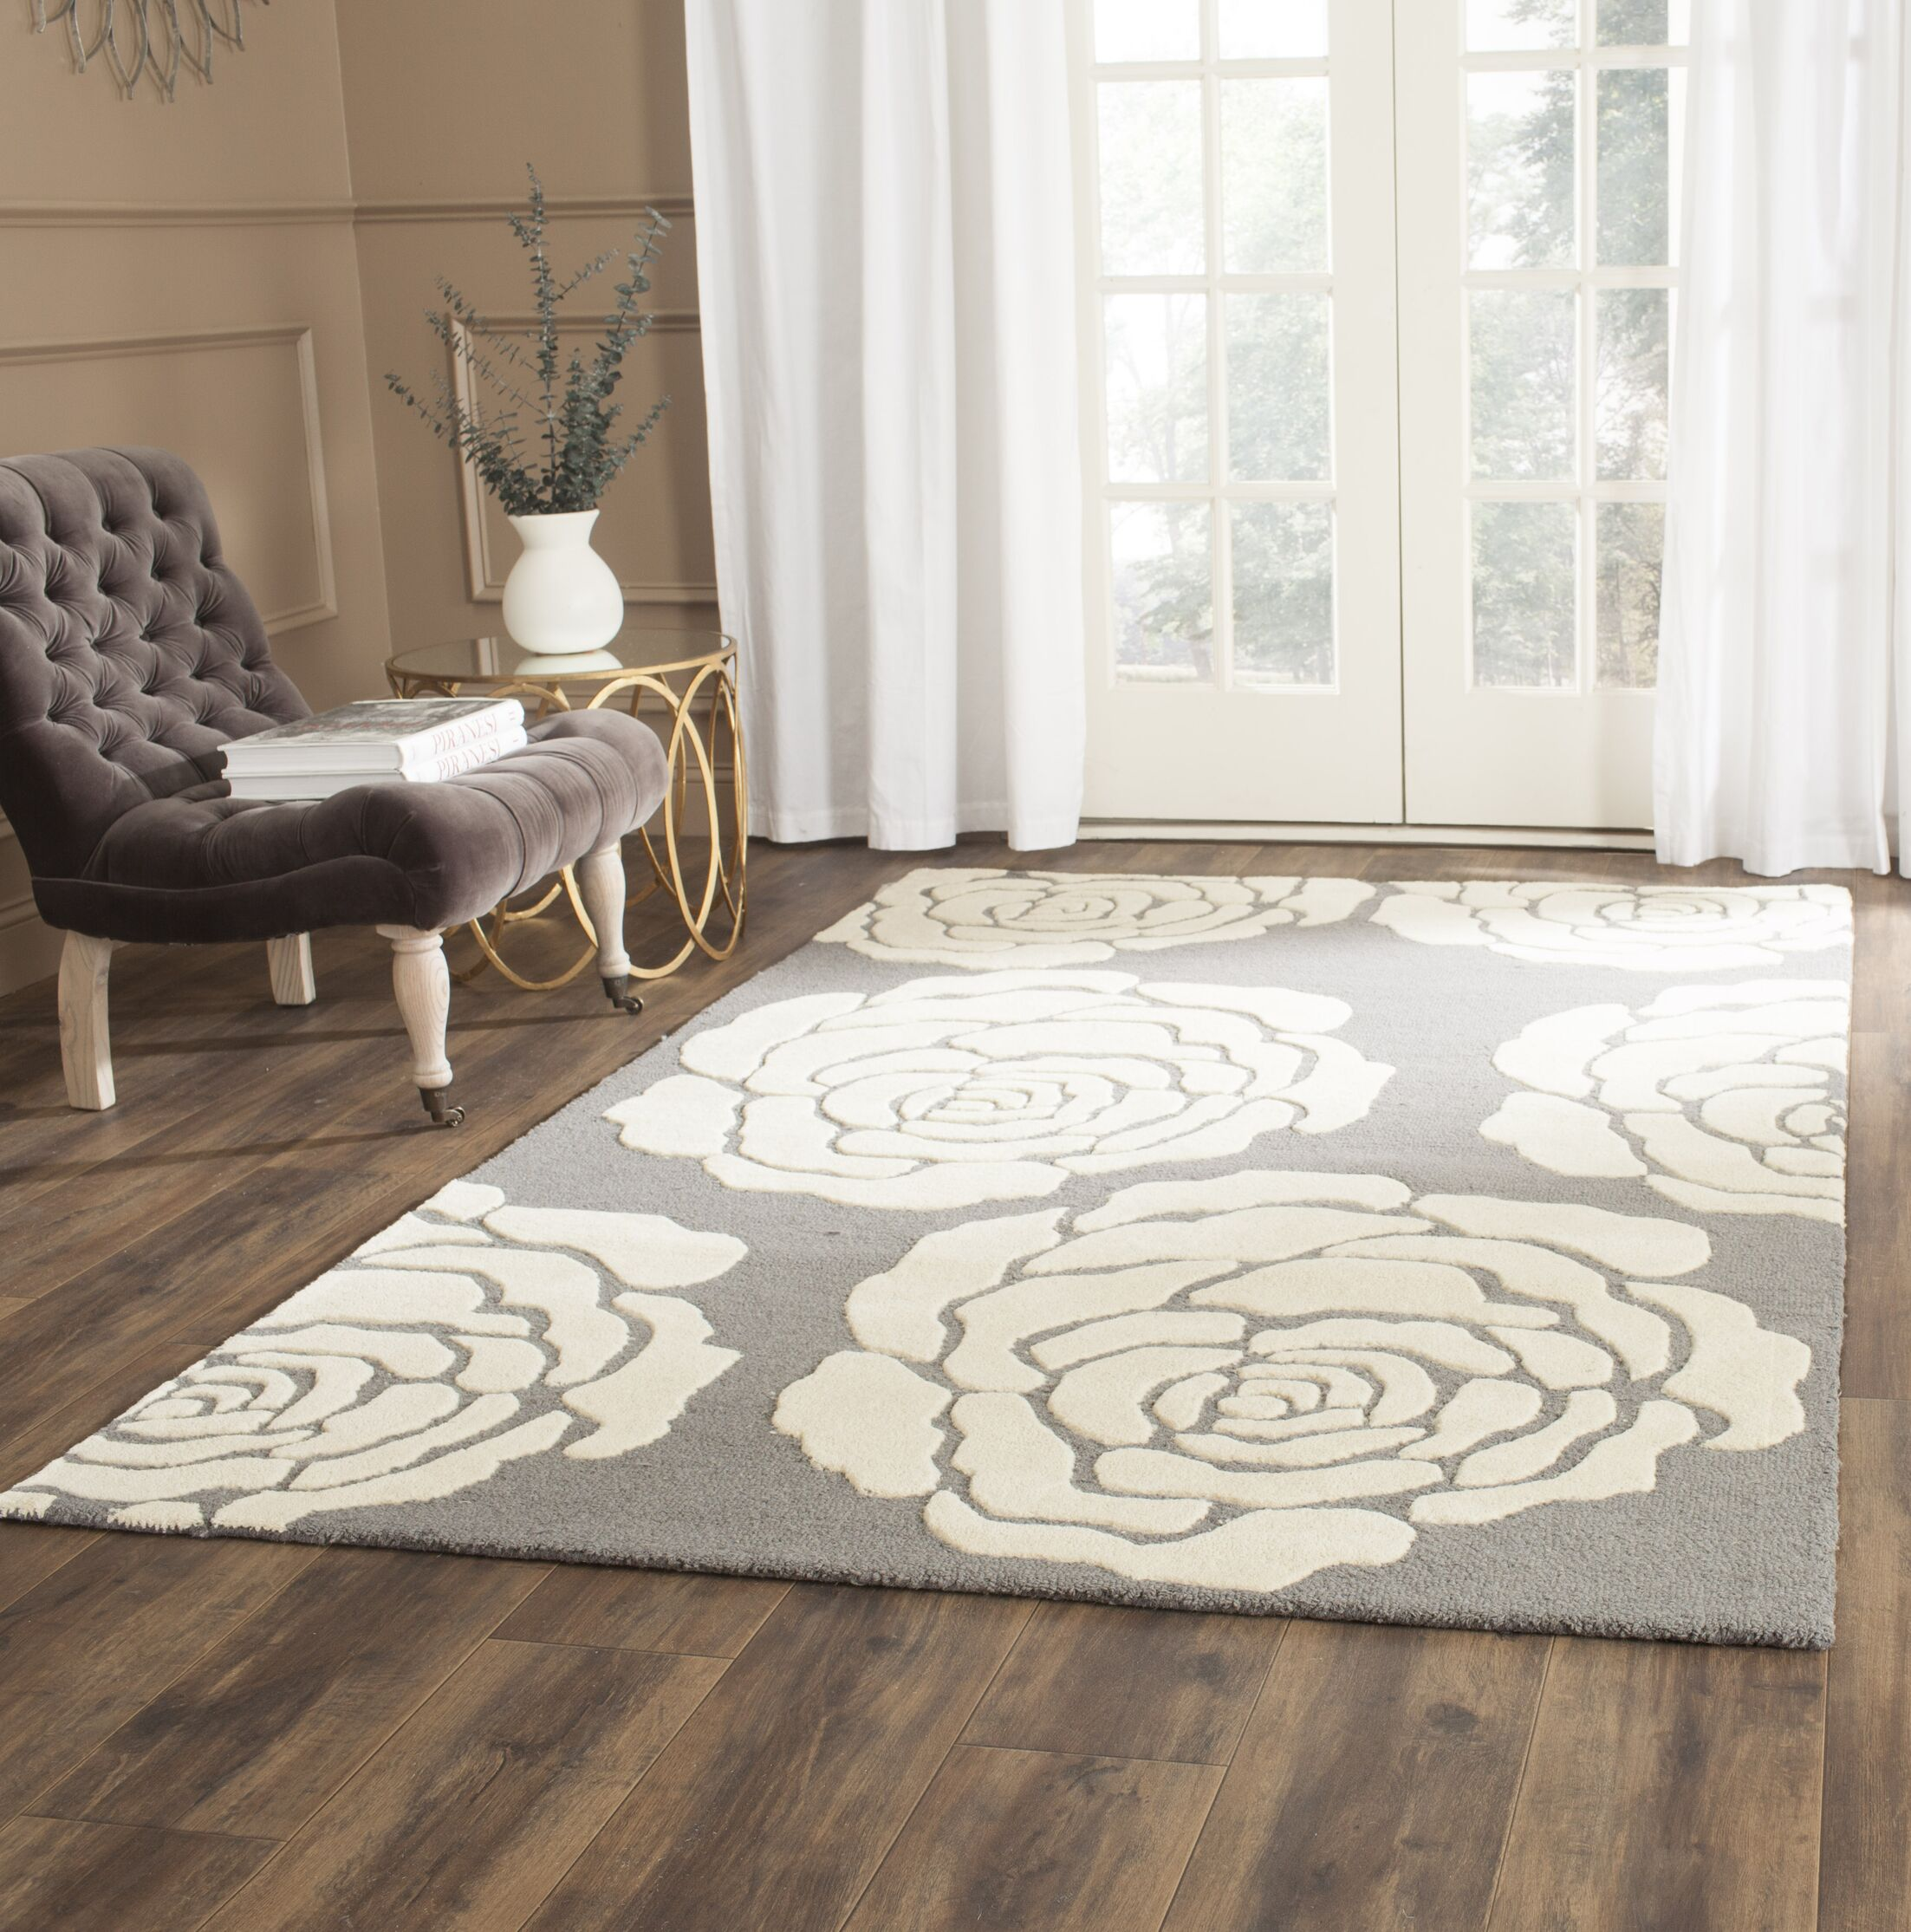 Martins Dark Gray / Ivory Area Rug Rug Size: Rectangle 6' x 9'